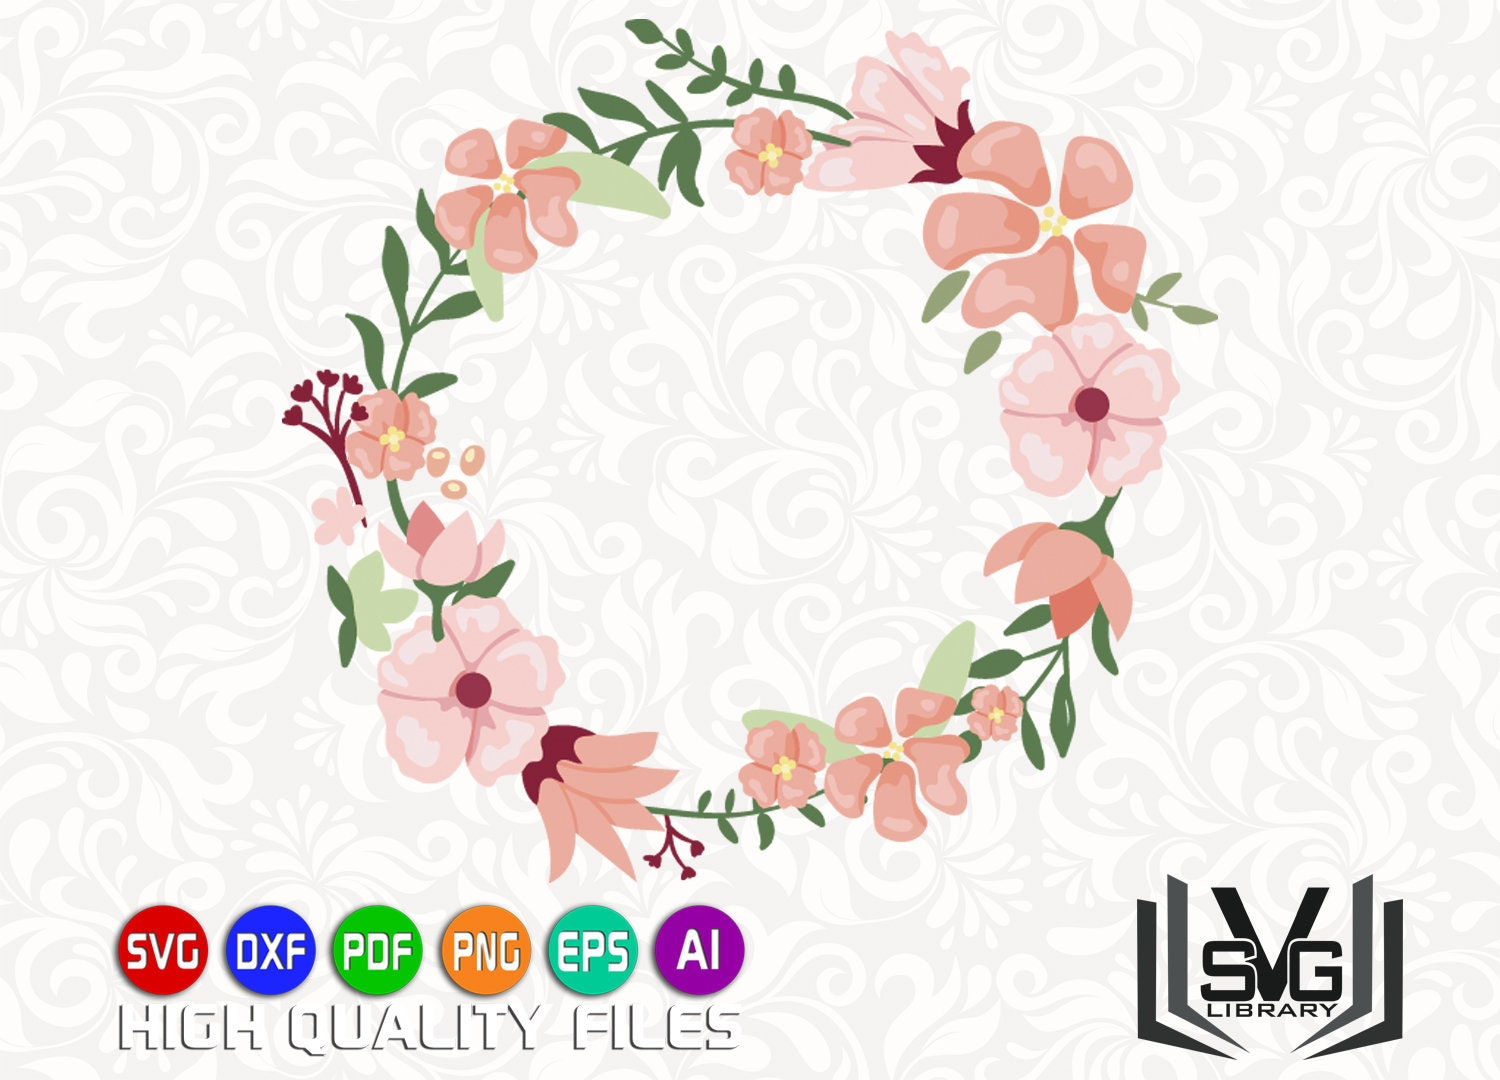 Floral Wreath Svg Laurel Wreath Svg Wreath Clipart Etsy